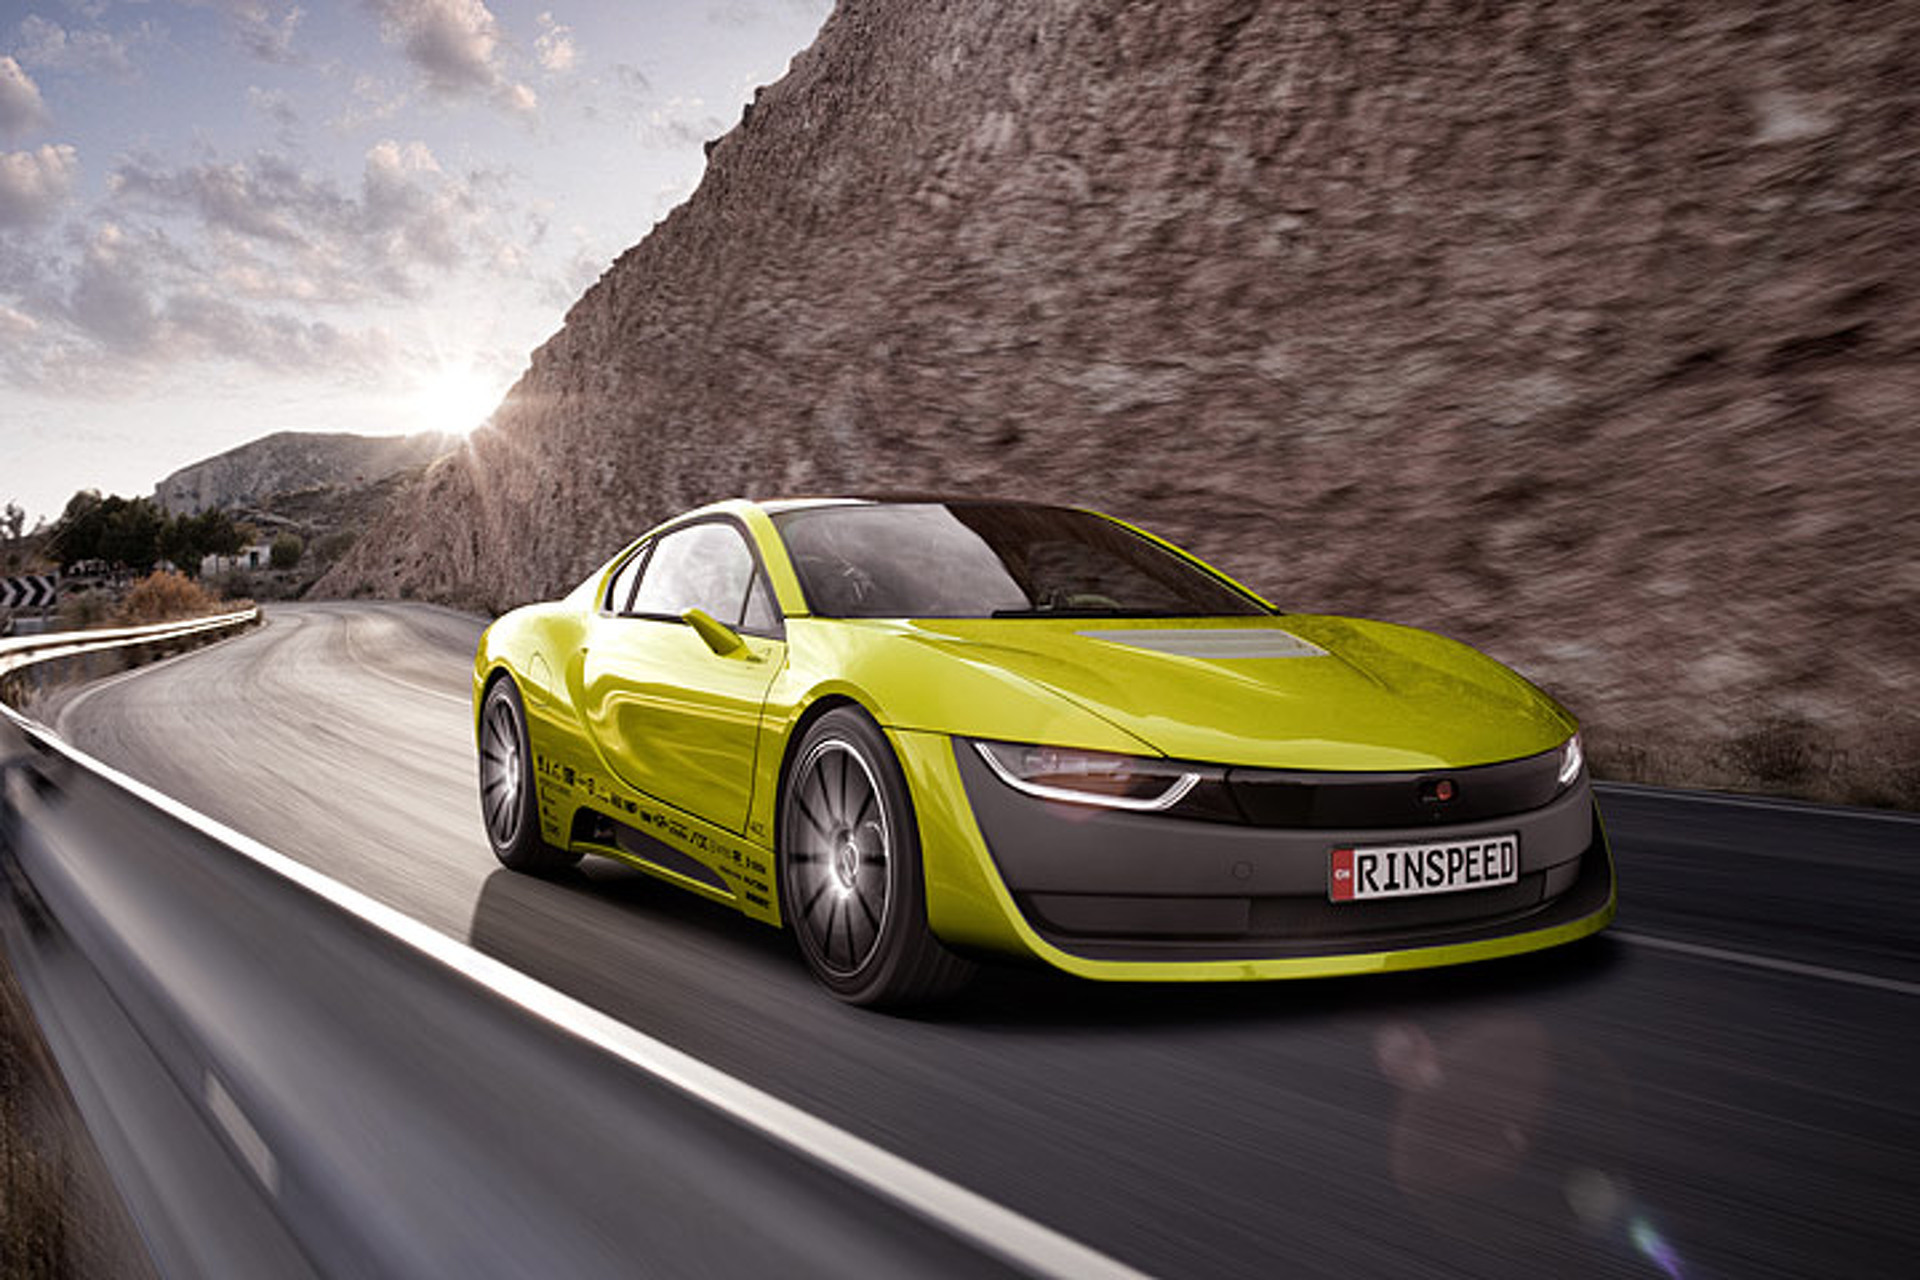 5 Things to Know About Rinspeed's Self-Driving BMW i8